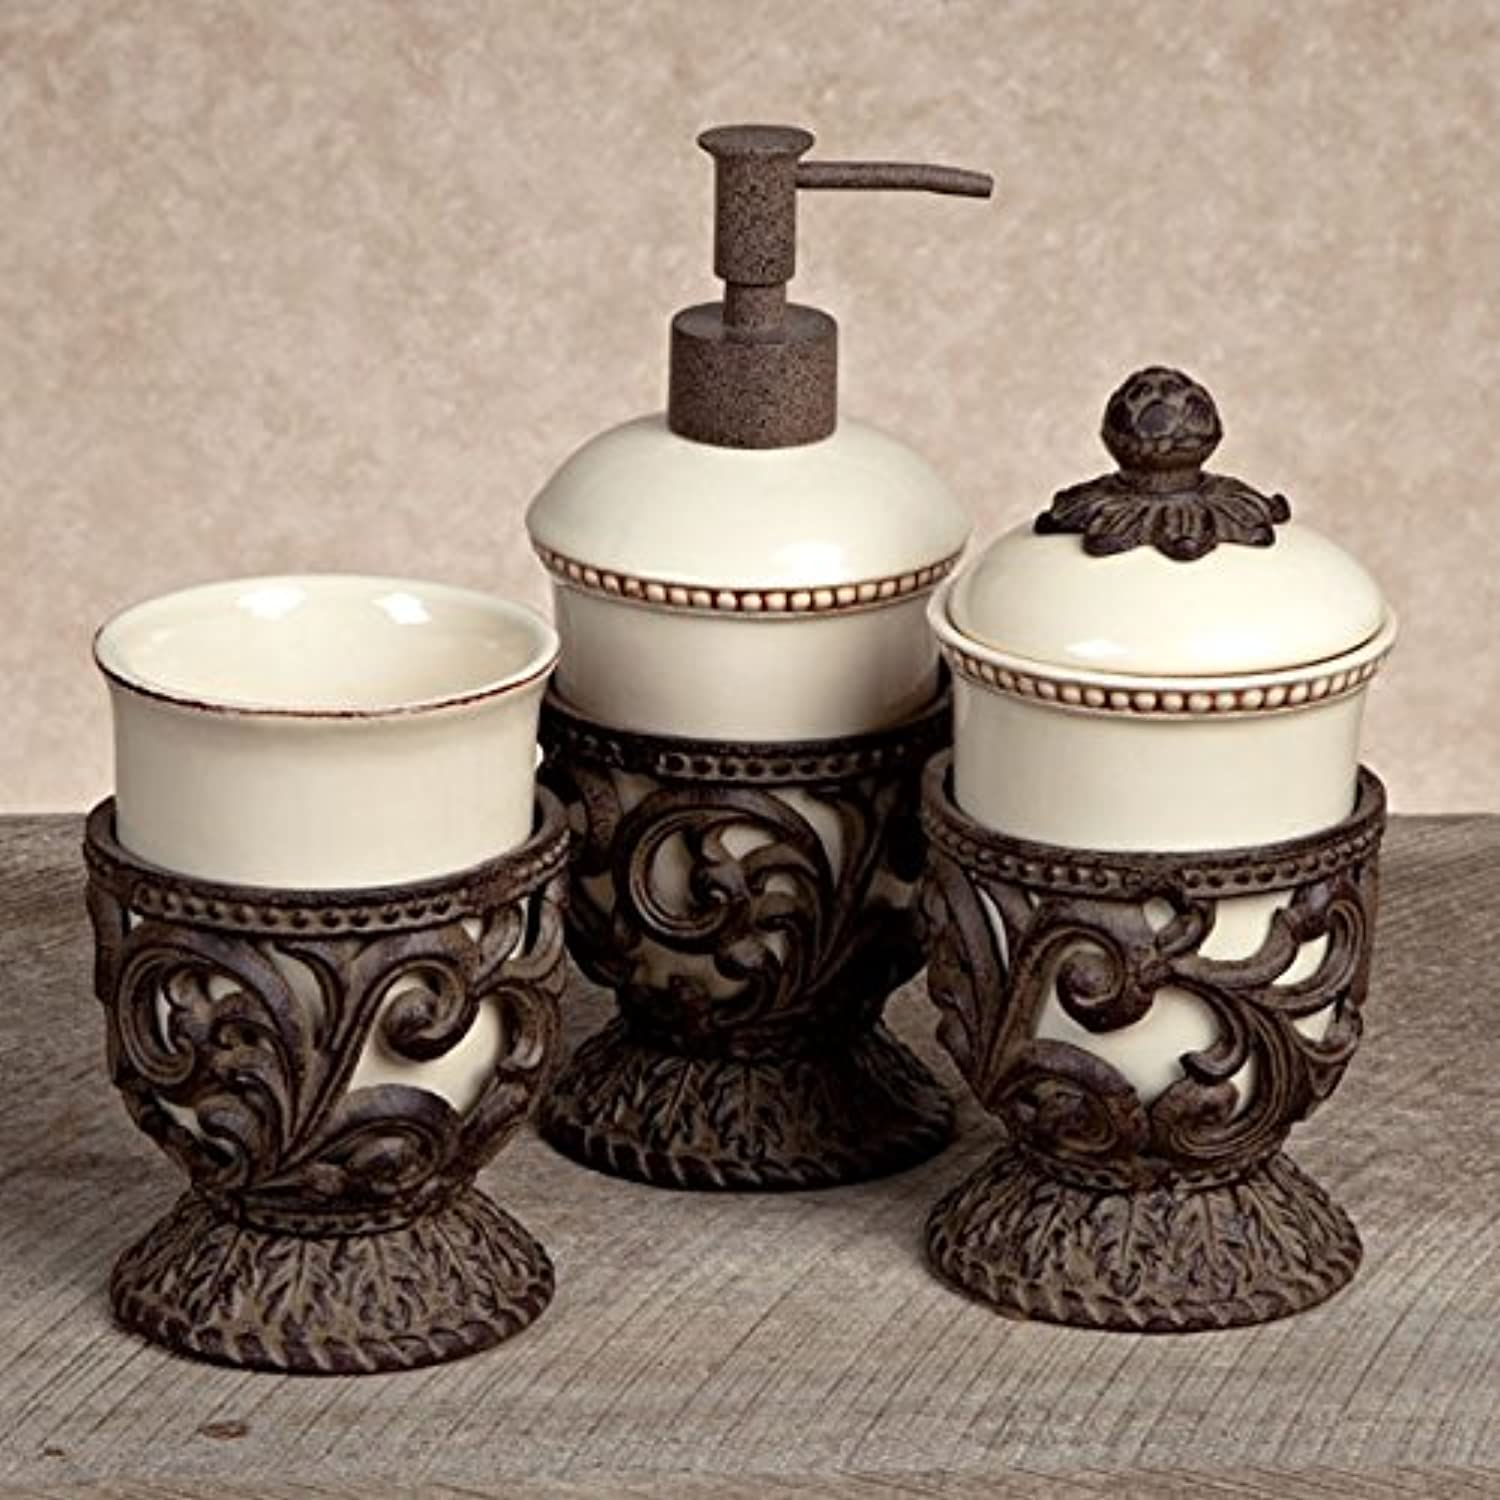 GG Collection Cream 3 Piece Vanity Set with Metal Holders